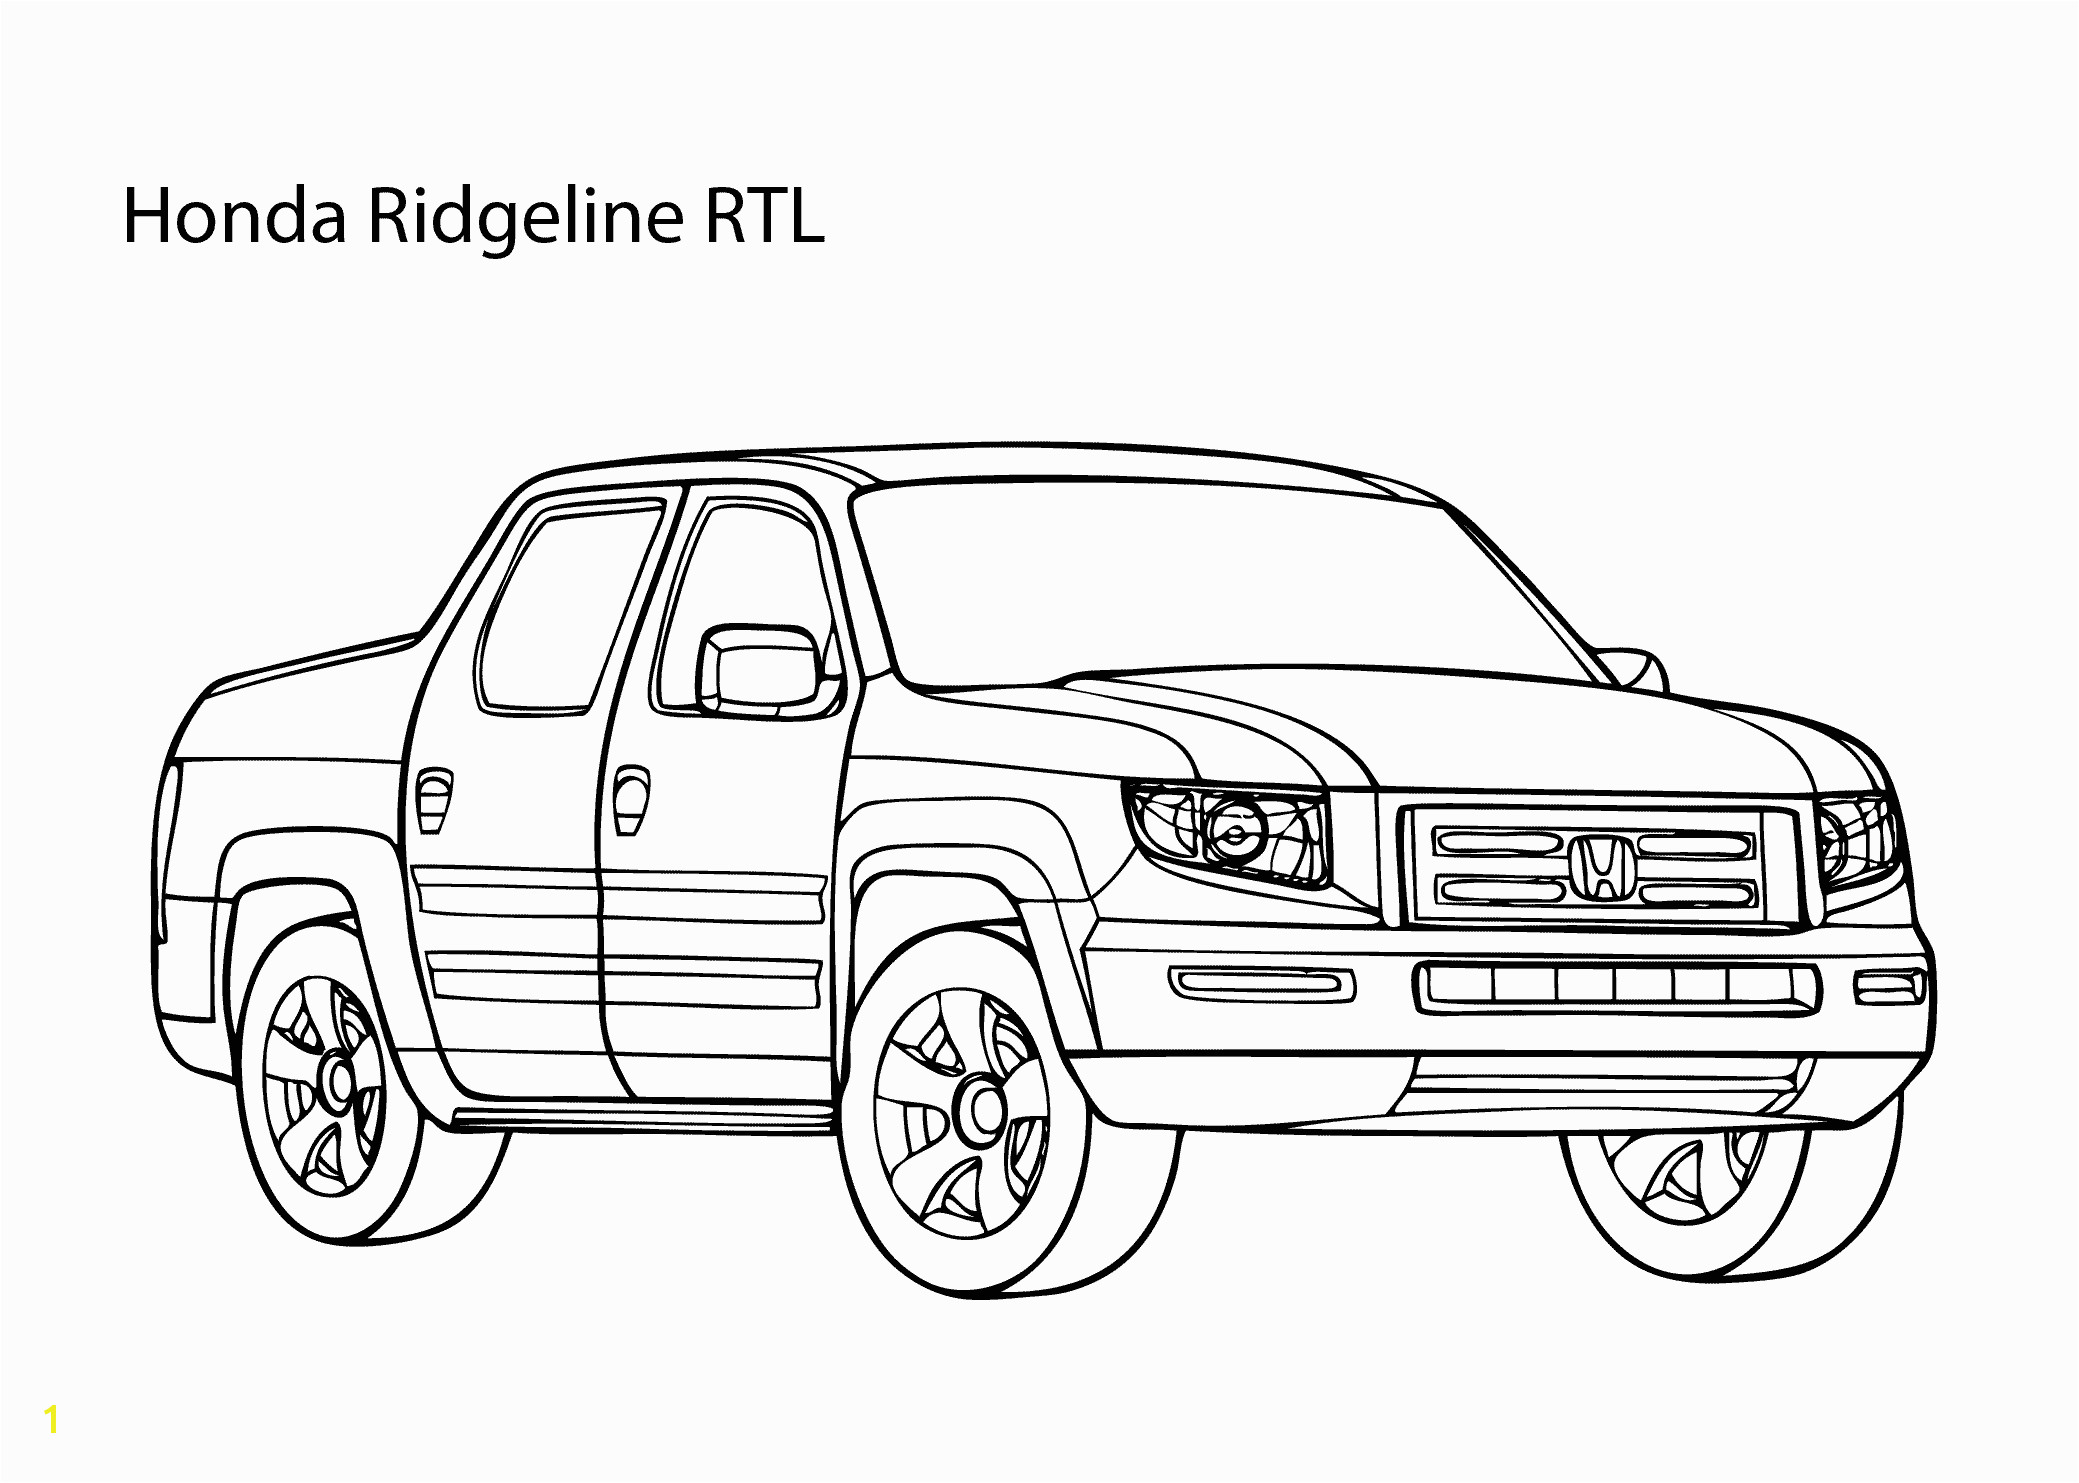 Super car Honda Ridgeline coloring page cool car printable free Coloring Pages For Kids